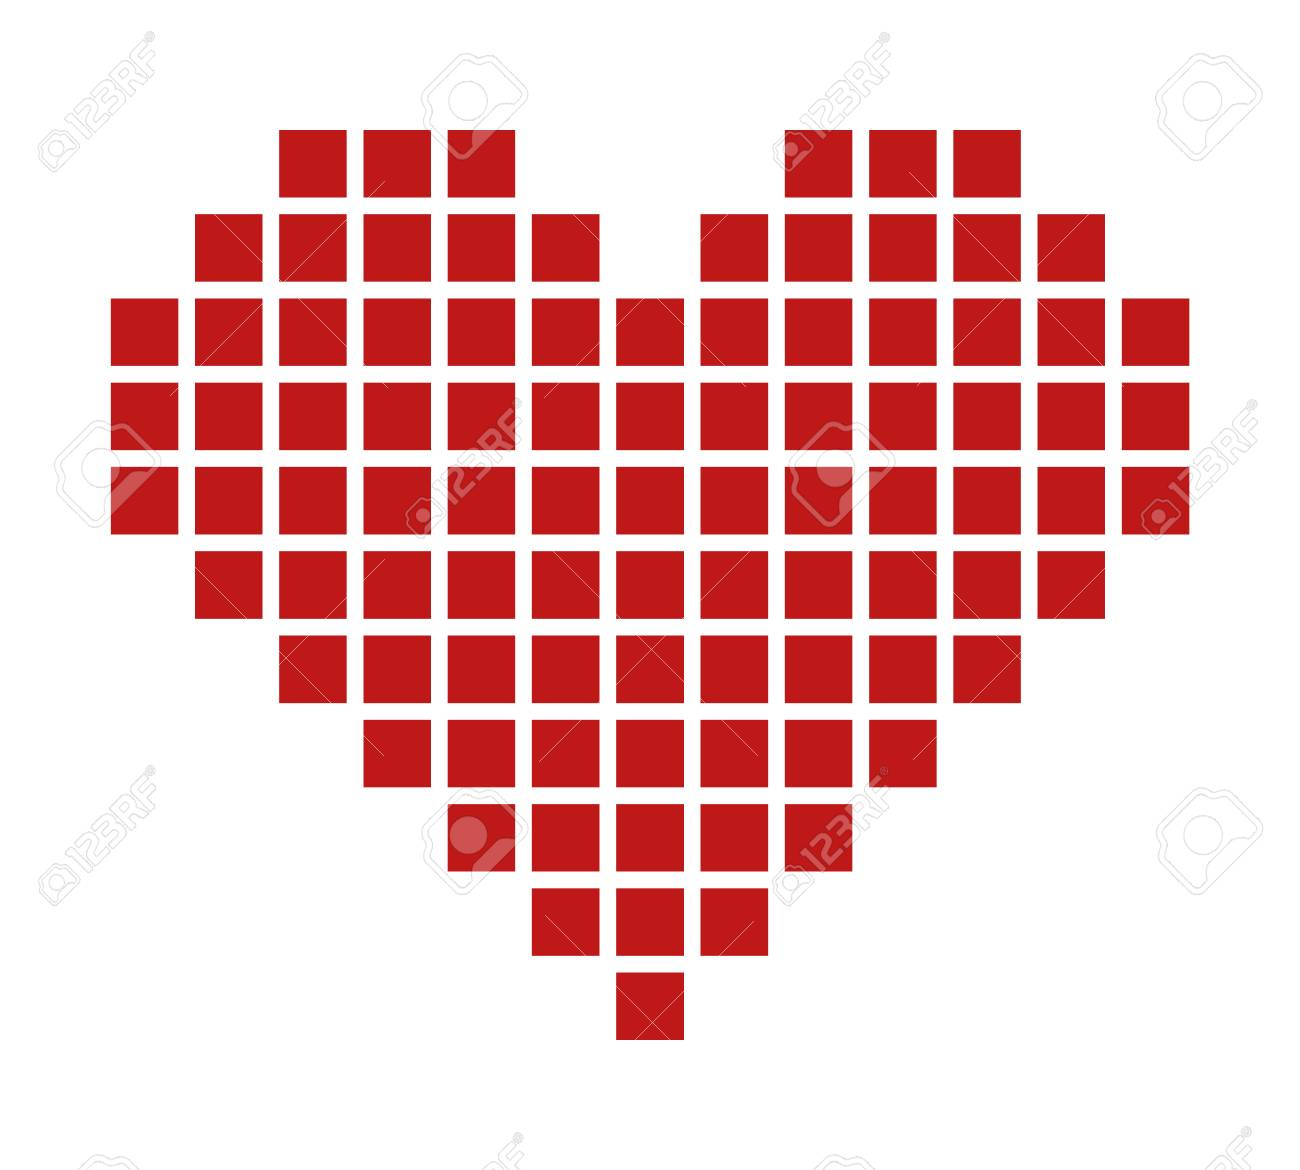 Pixel heart or pixelated heart flat red icon for apps and games